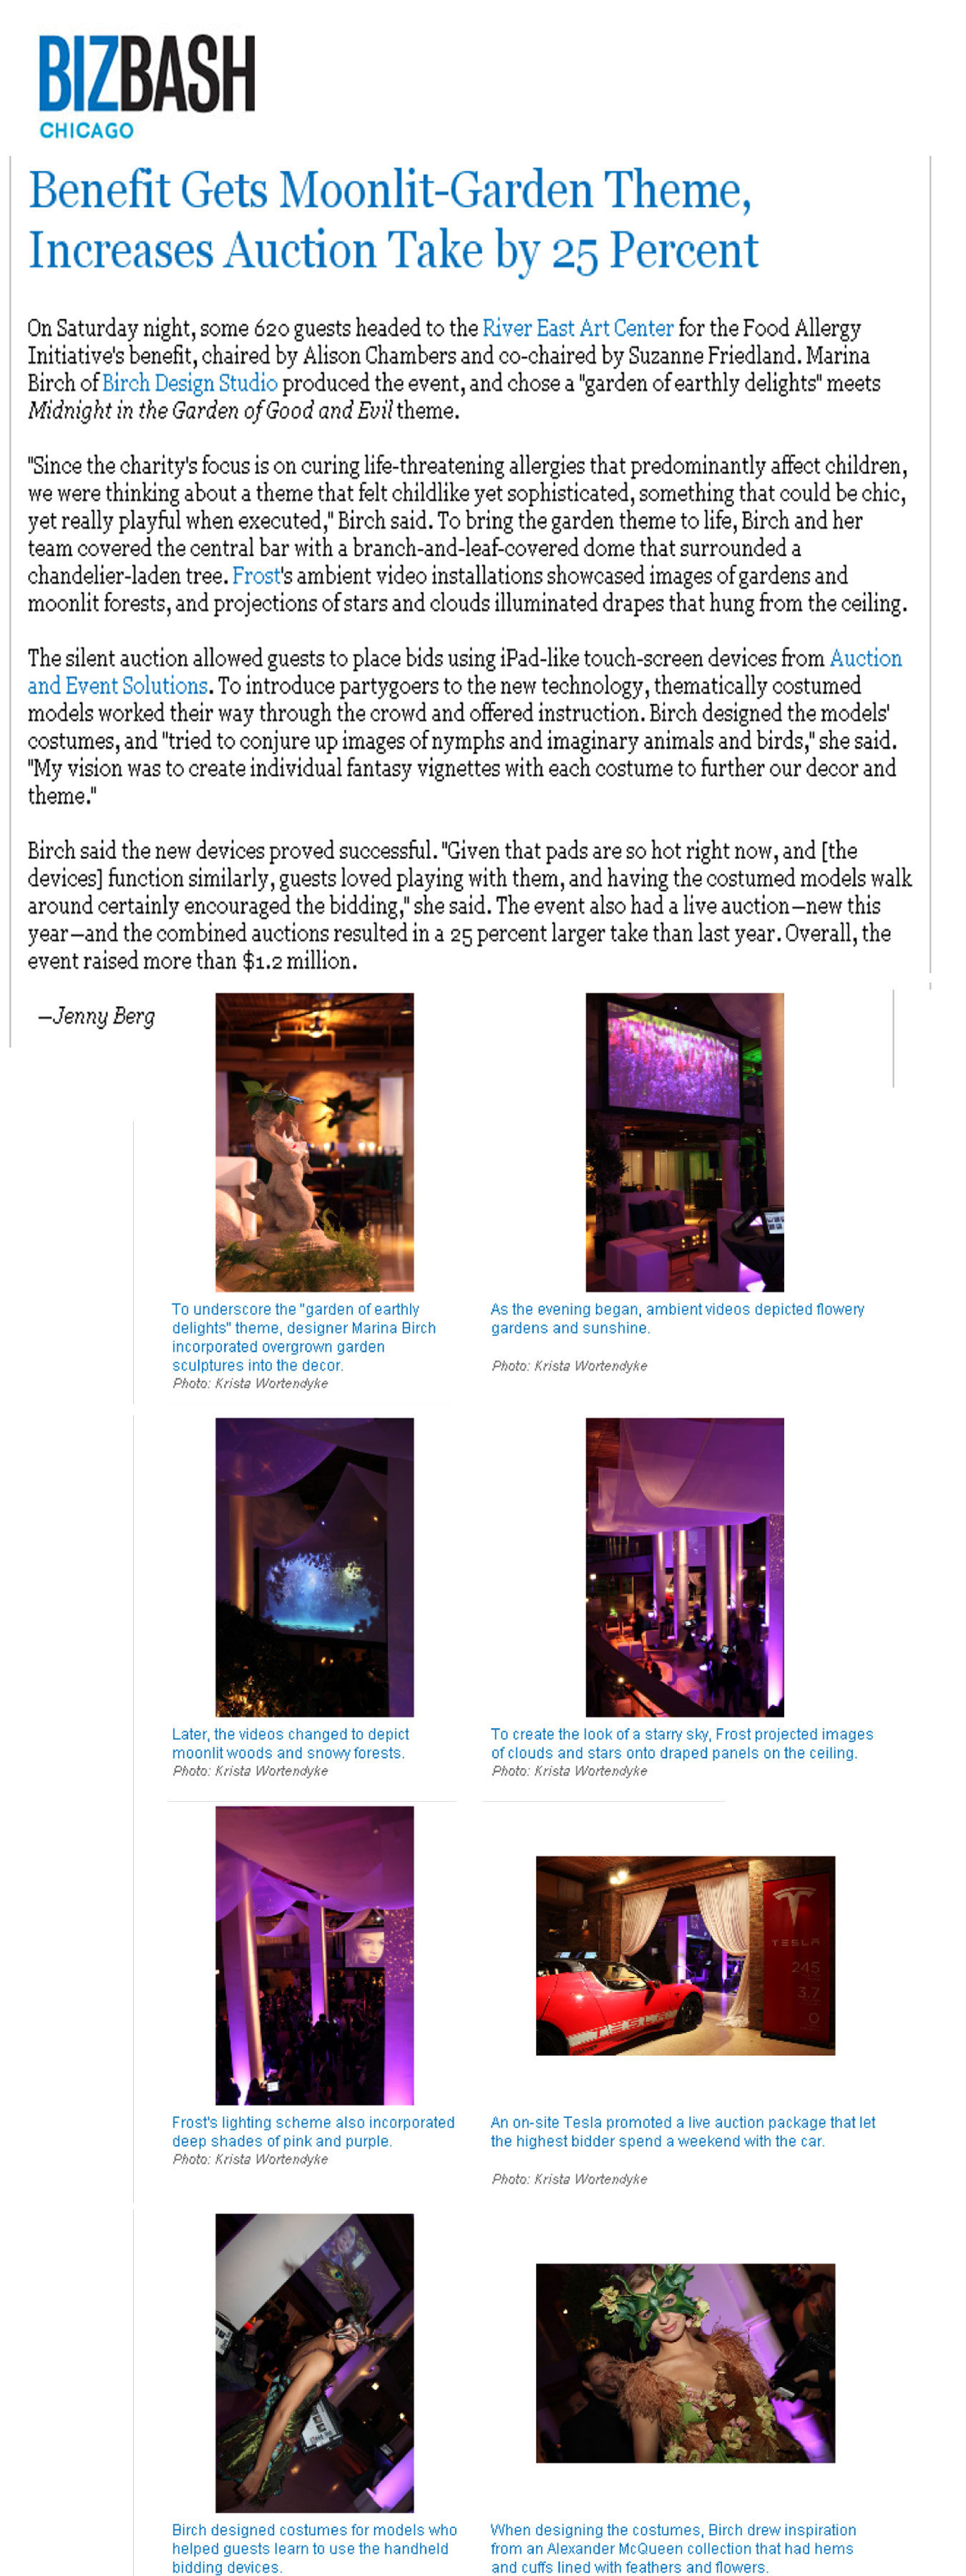 20 - Biz Bash Moonlight - Article